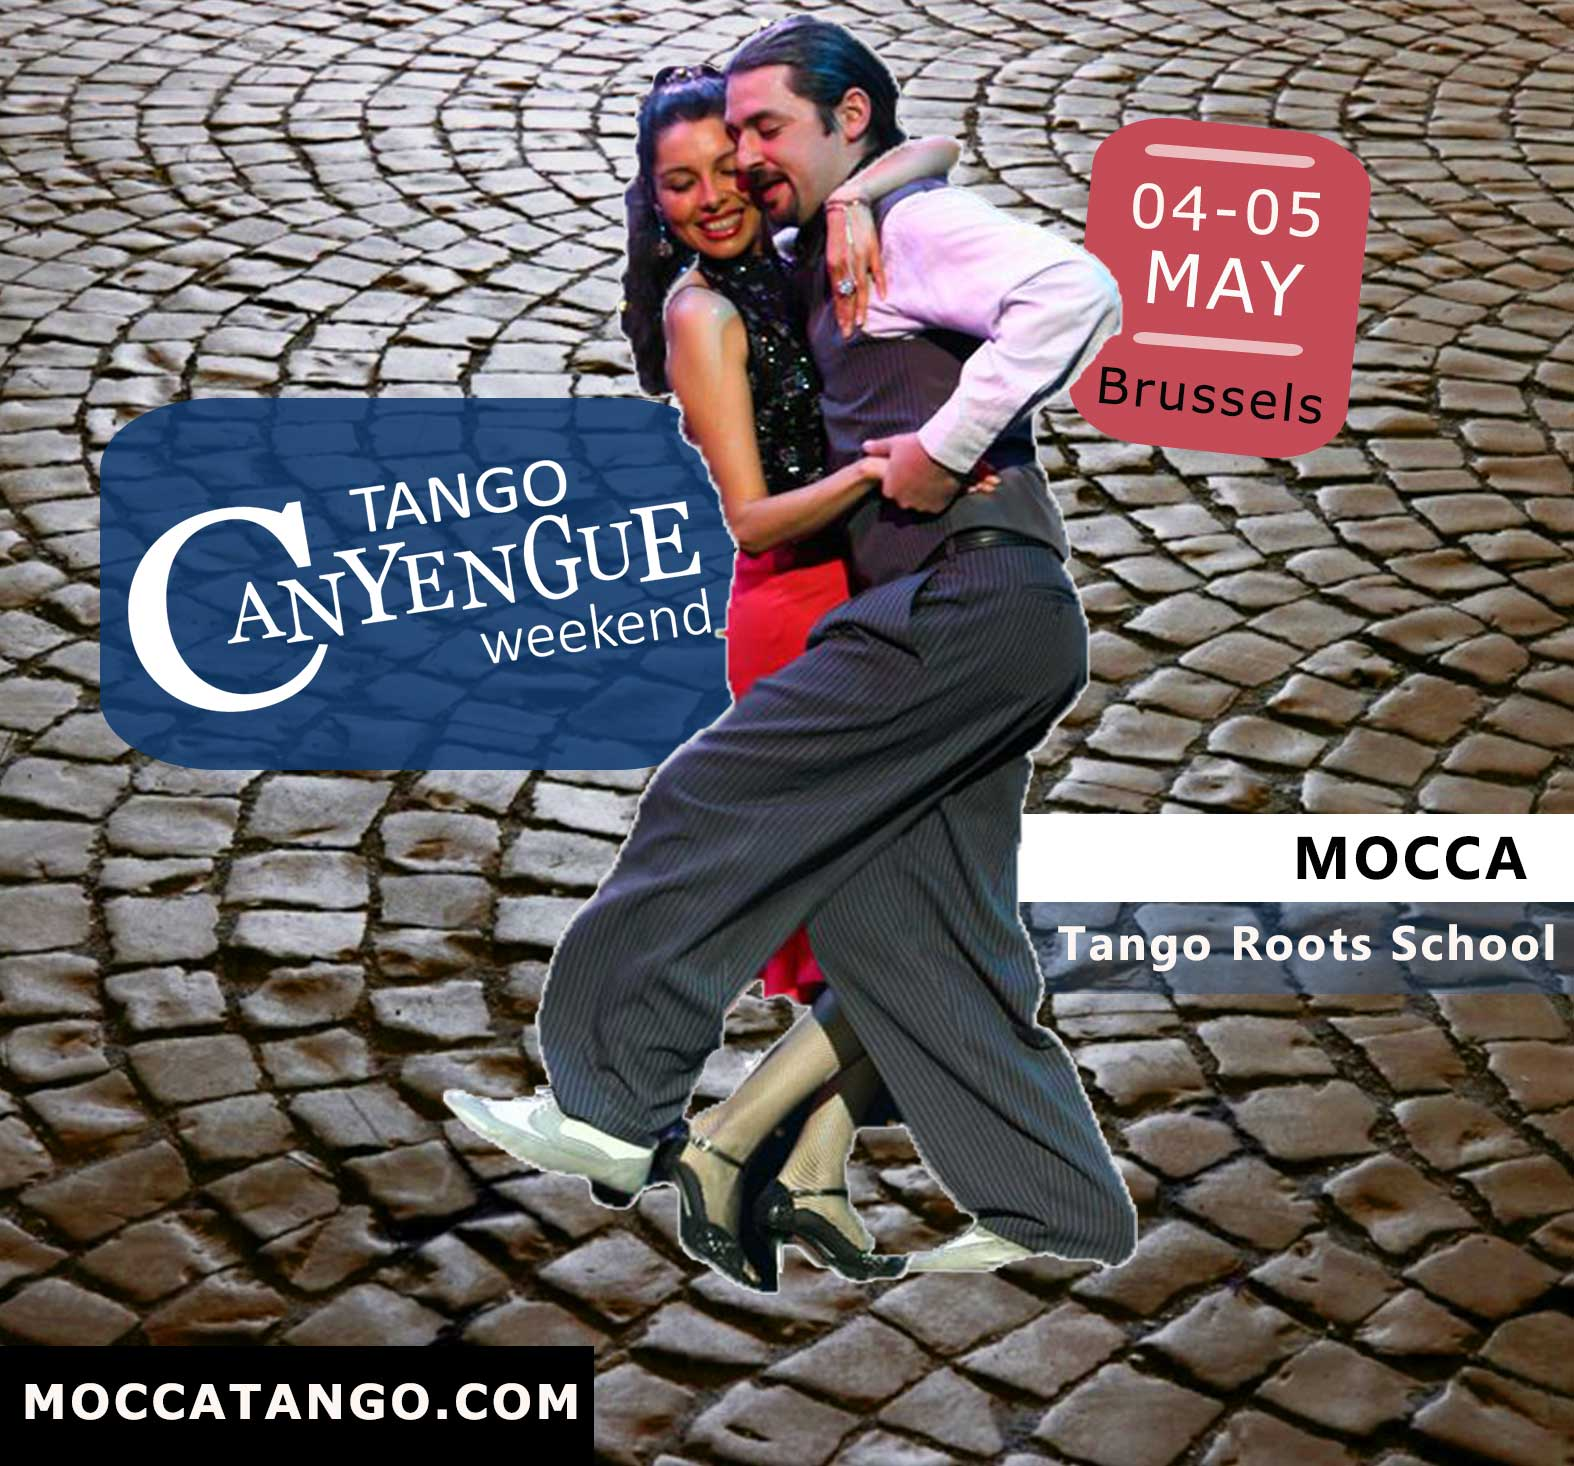 Tango Canyengue Weekend